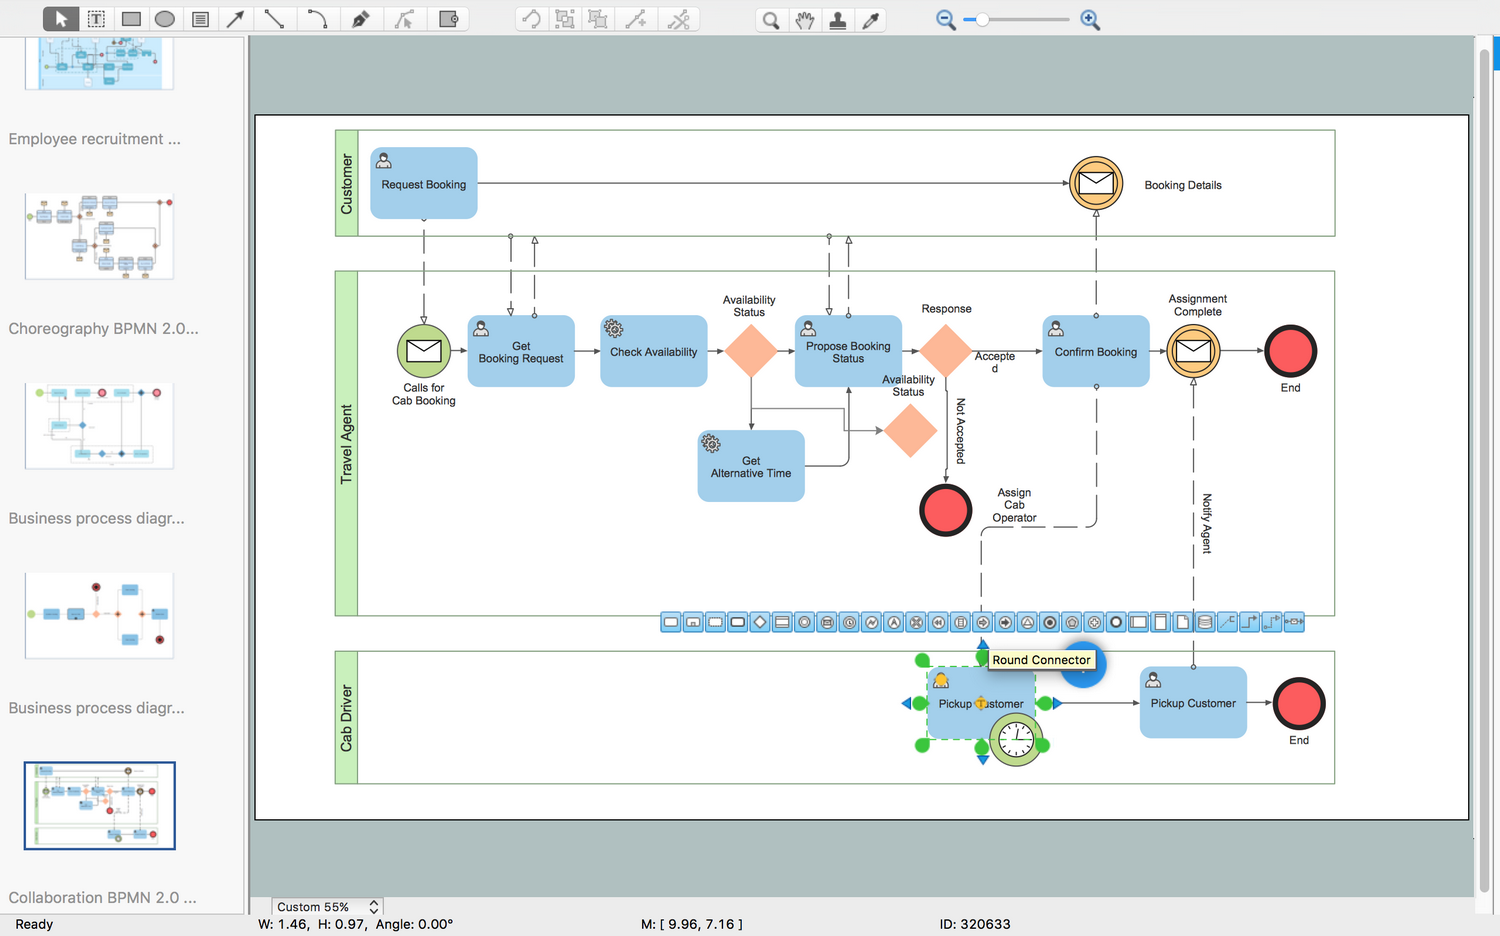 business process modeling diagram collaboration bpmn20 - Visio Like Program For Mac